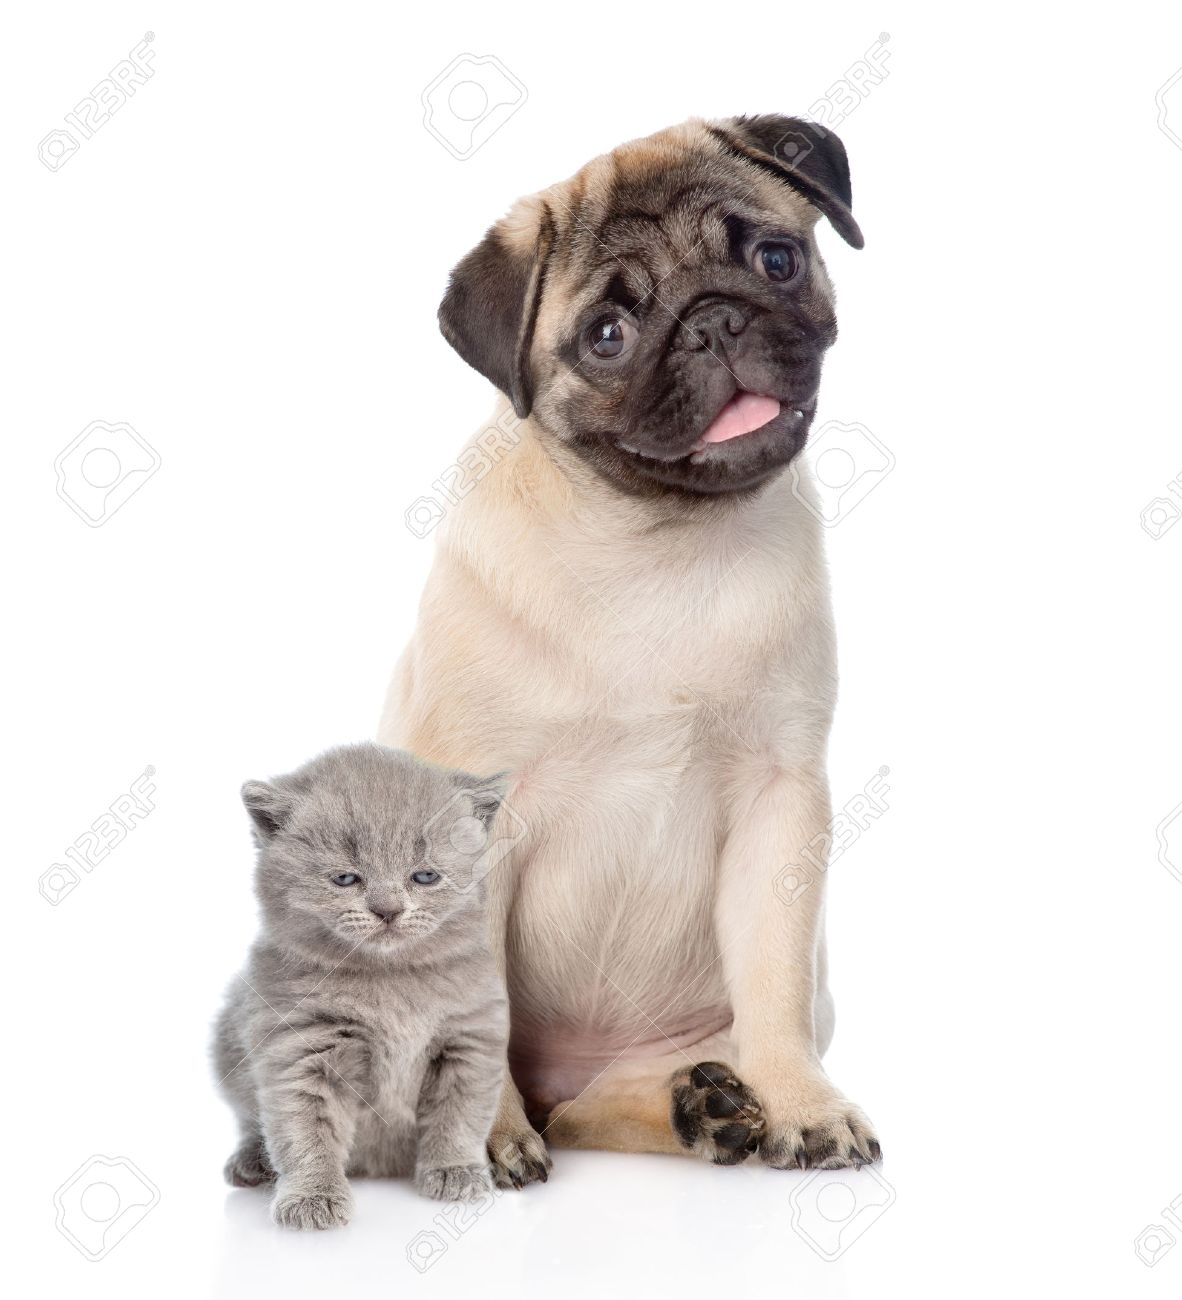 Funny Pug Puppy Sitting With Tiny Scottish Cat Together Isolated